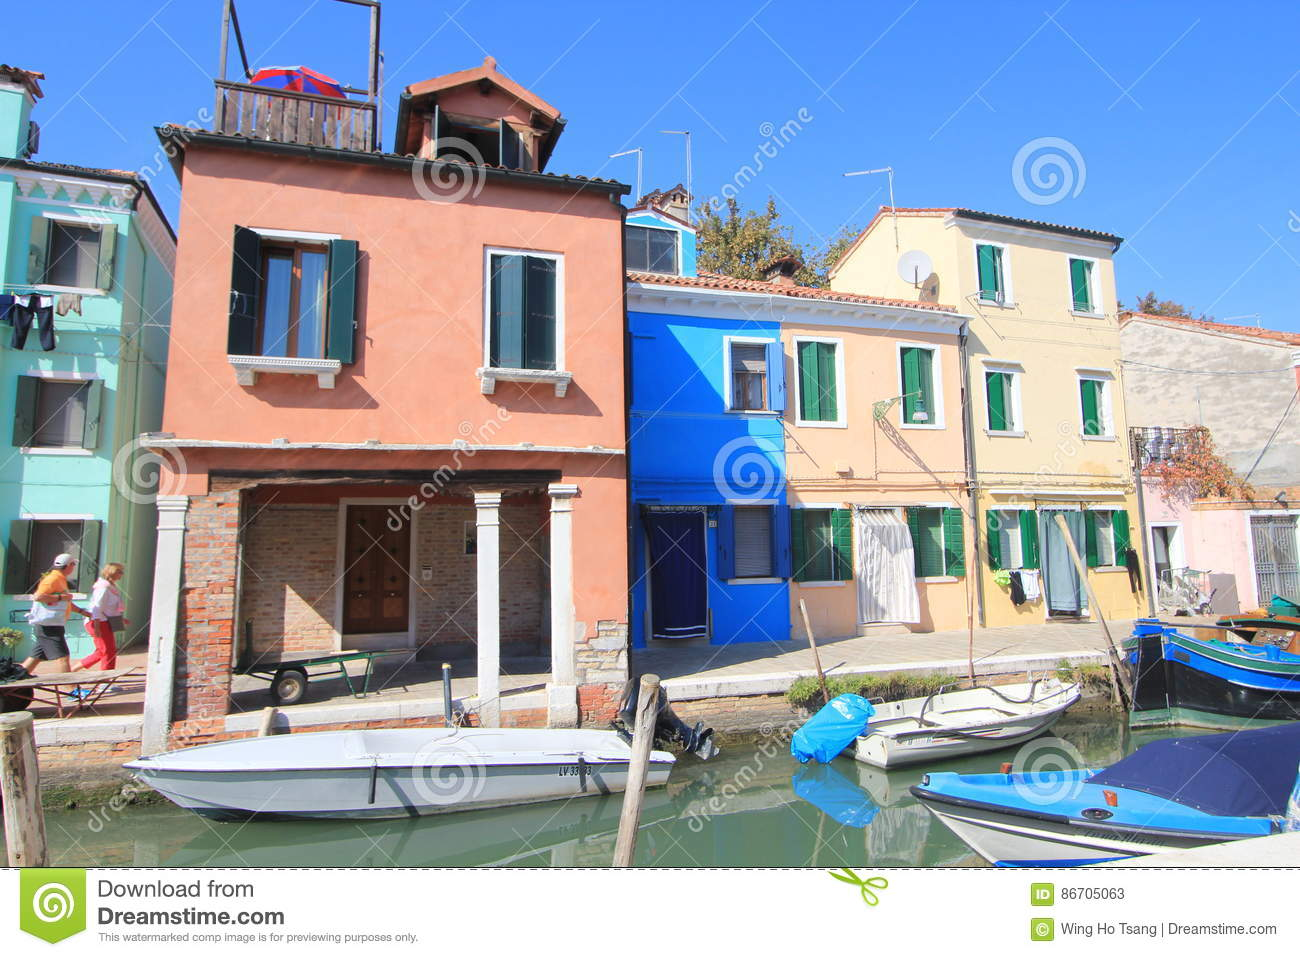 Waterway, Property, Water, Transportation, Villa, Real ...